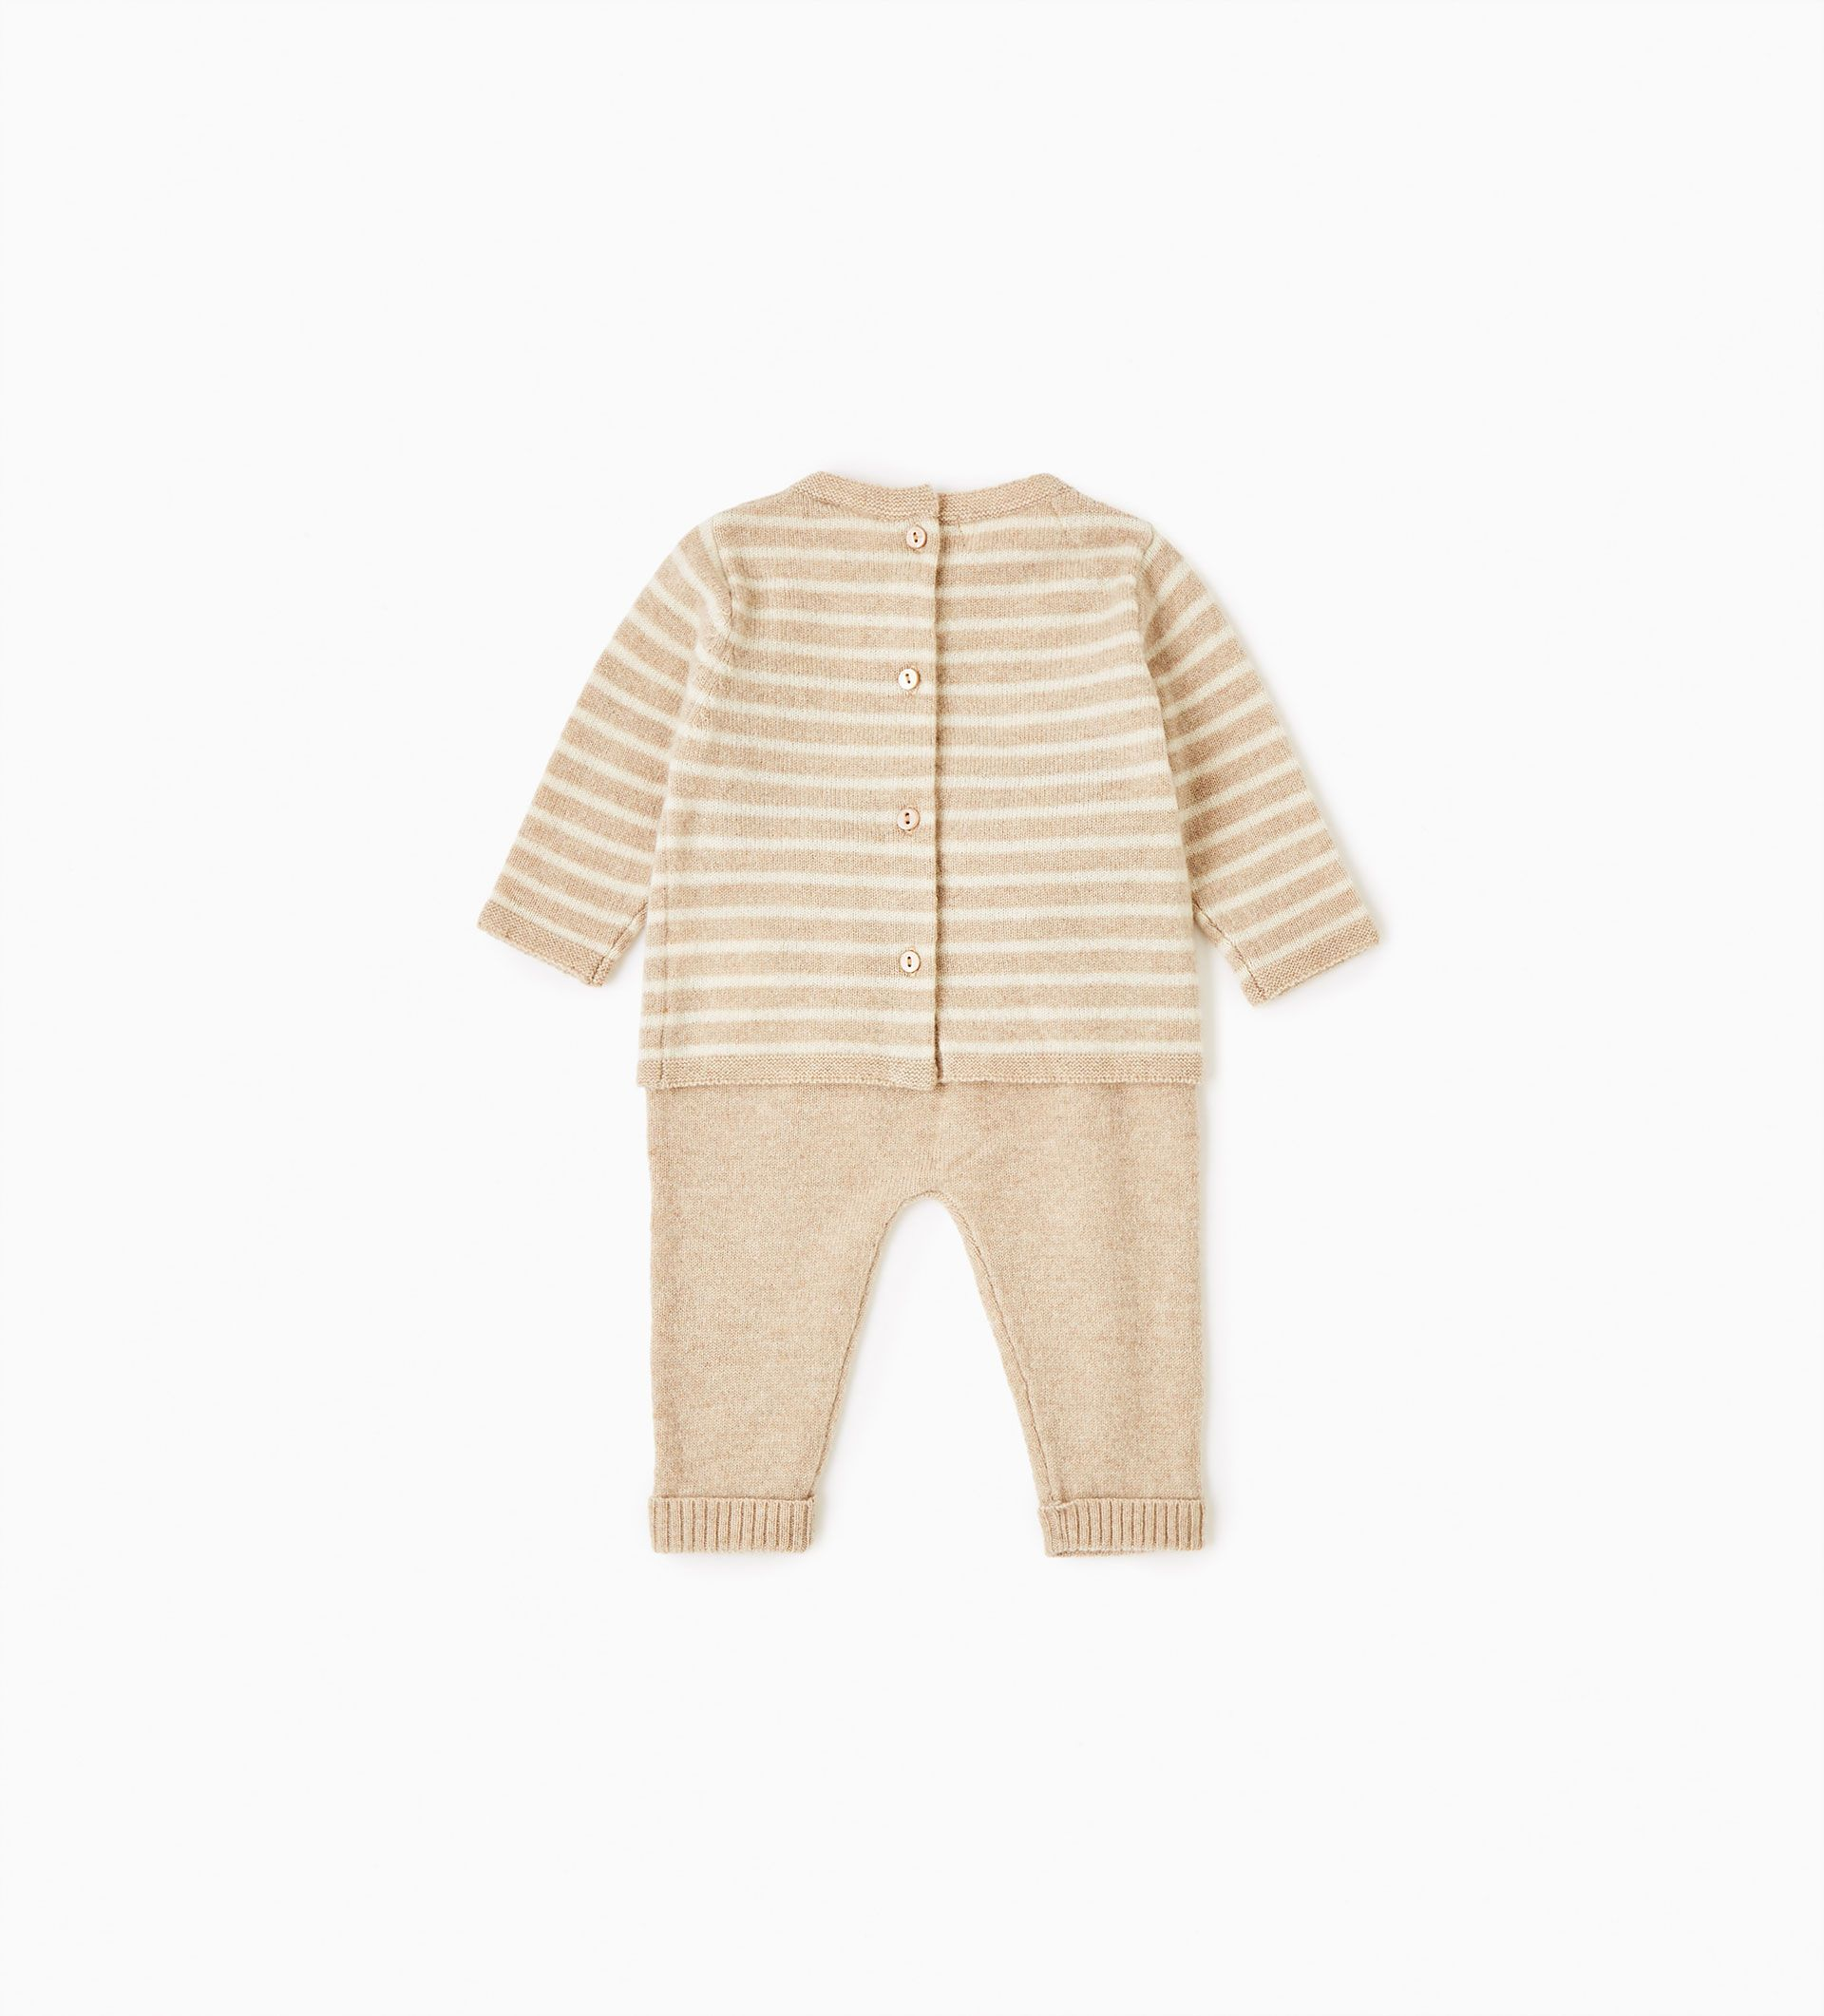 Striped cashmere set for baby 0 12 month clothes from Zara